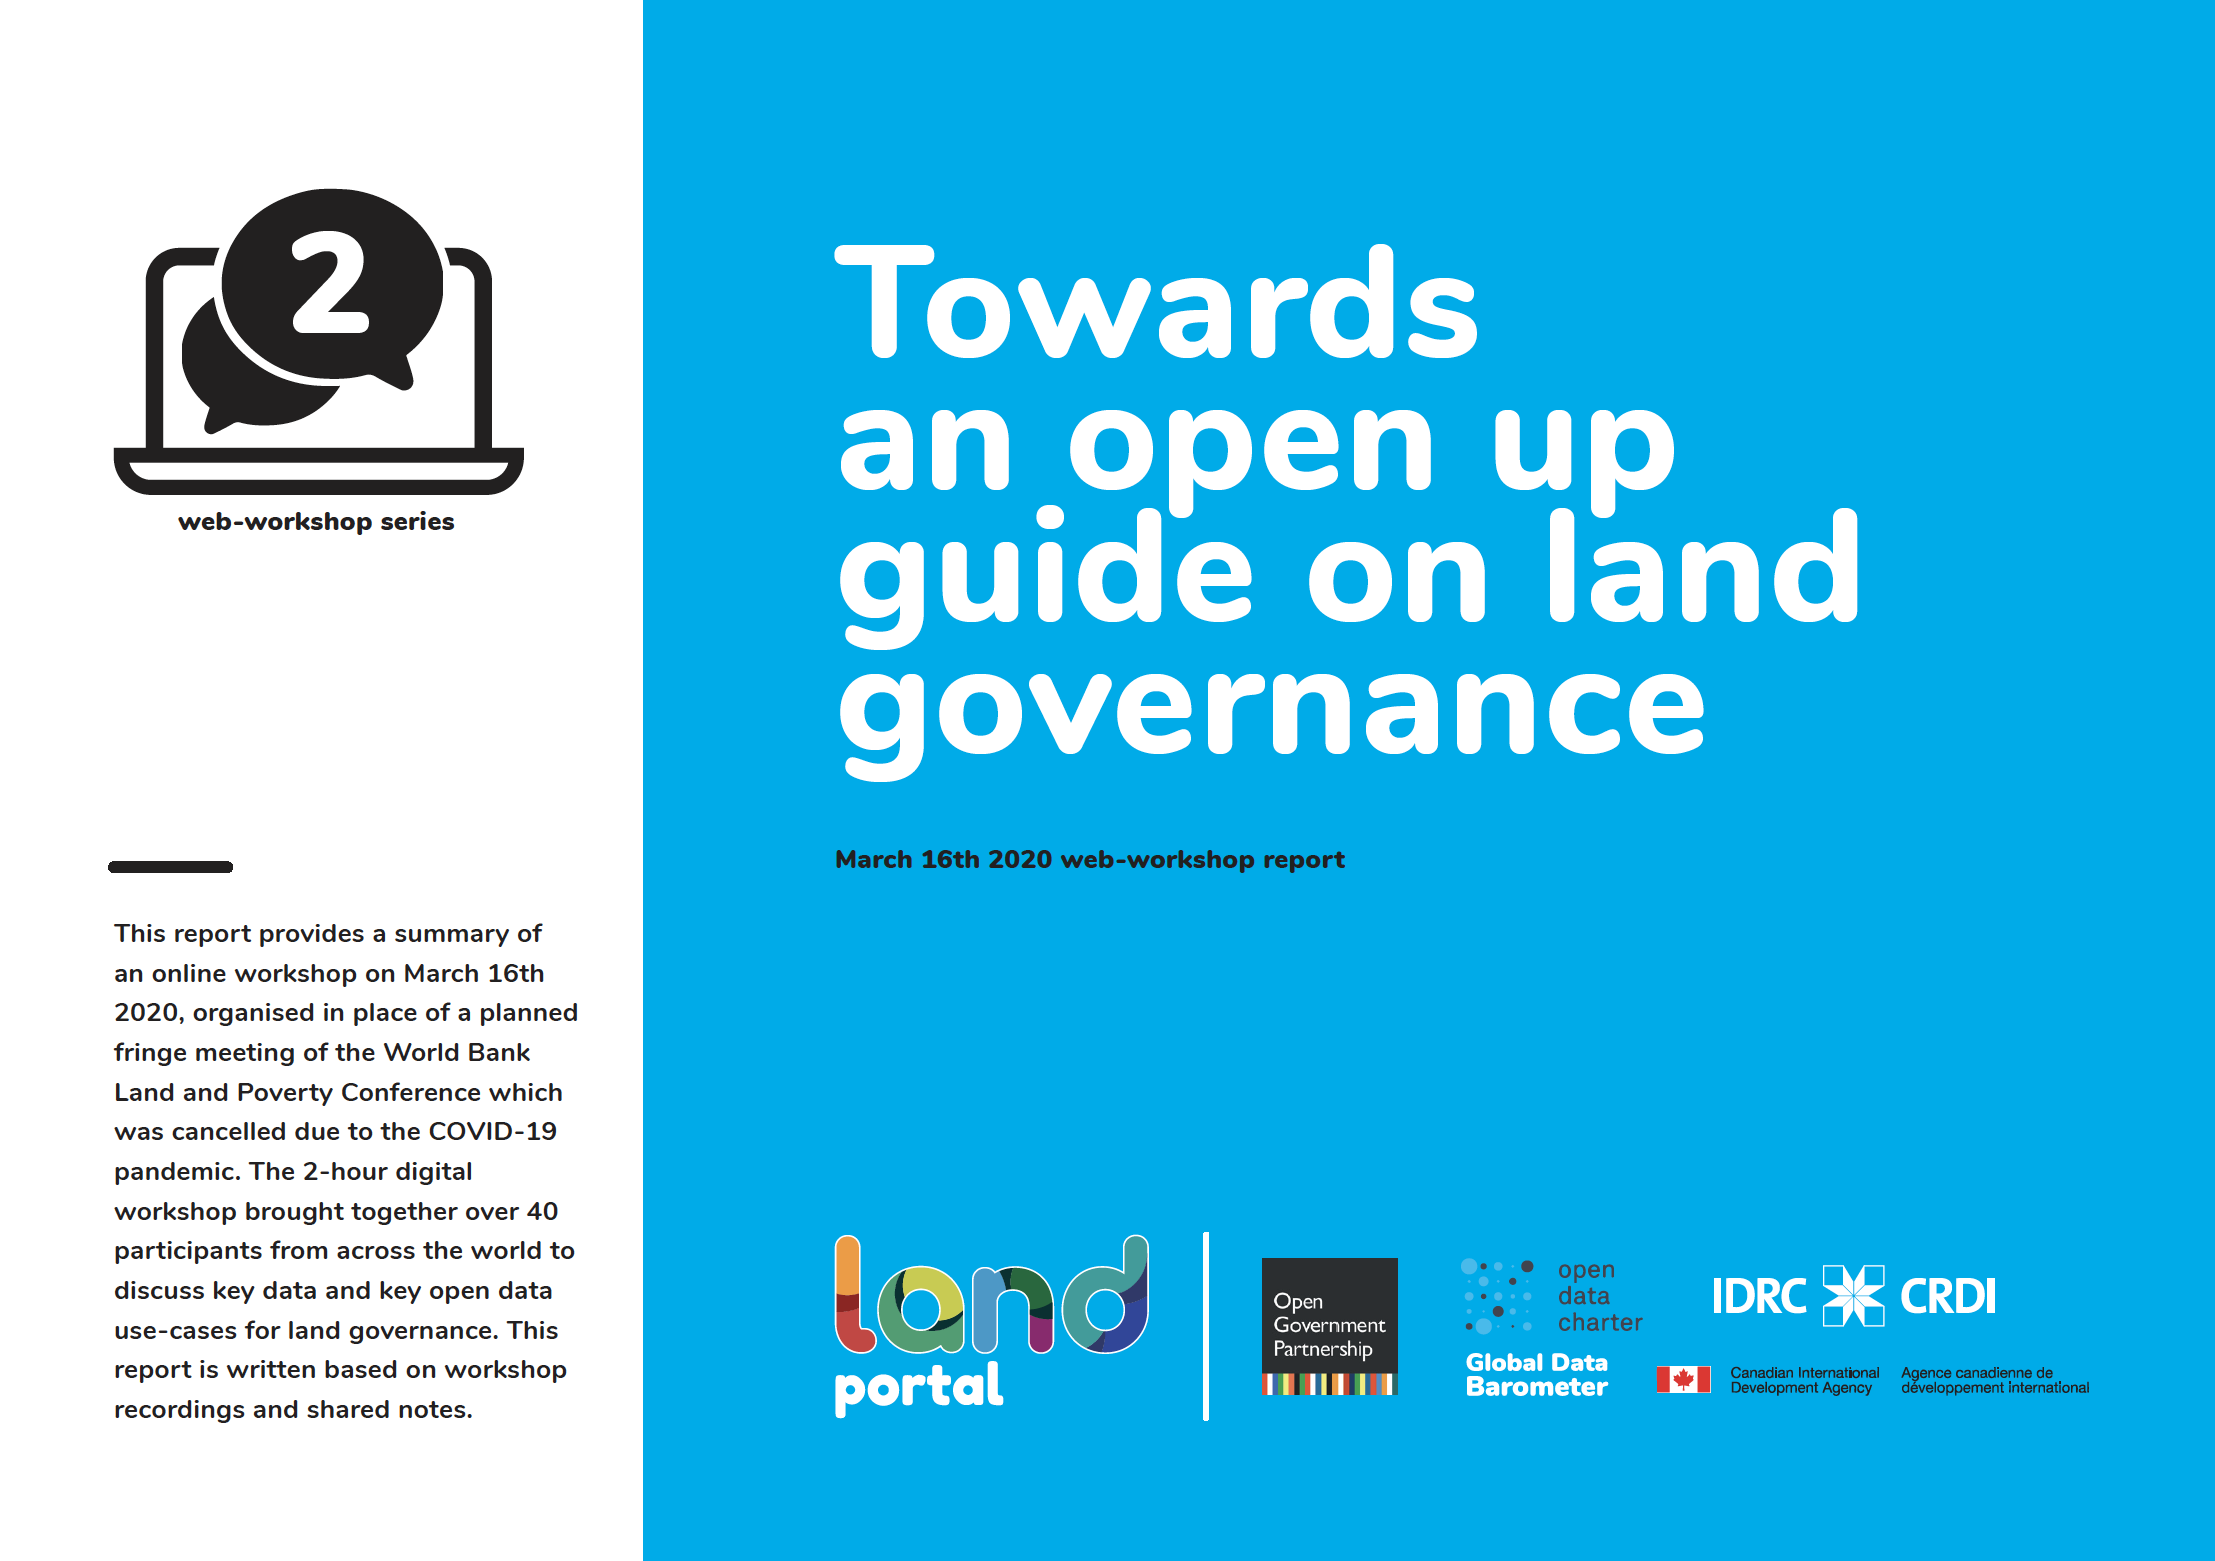 an open up guide on land governance